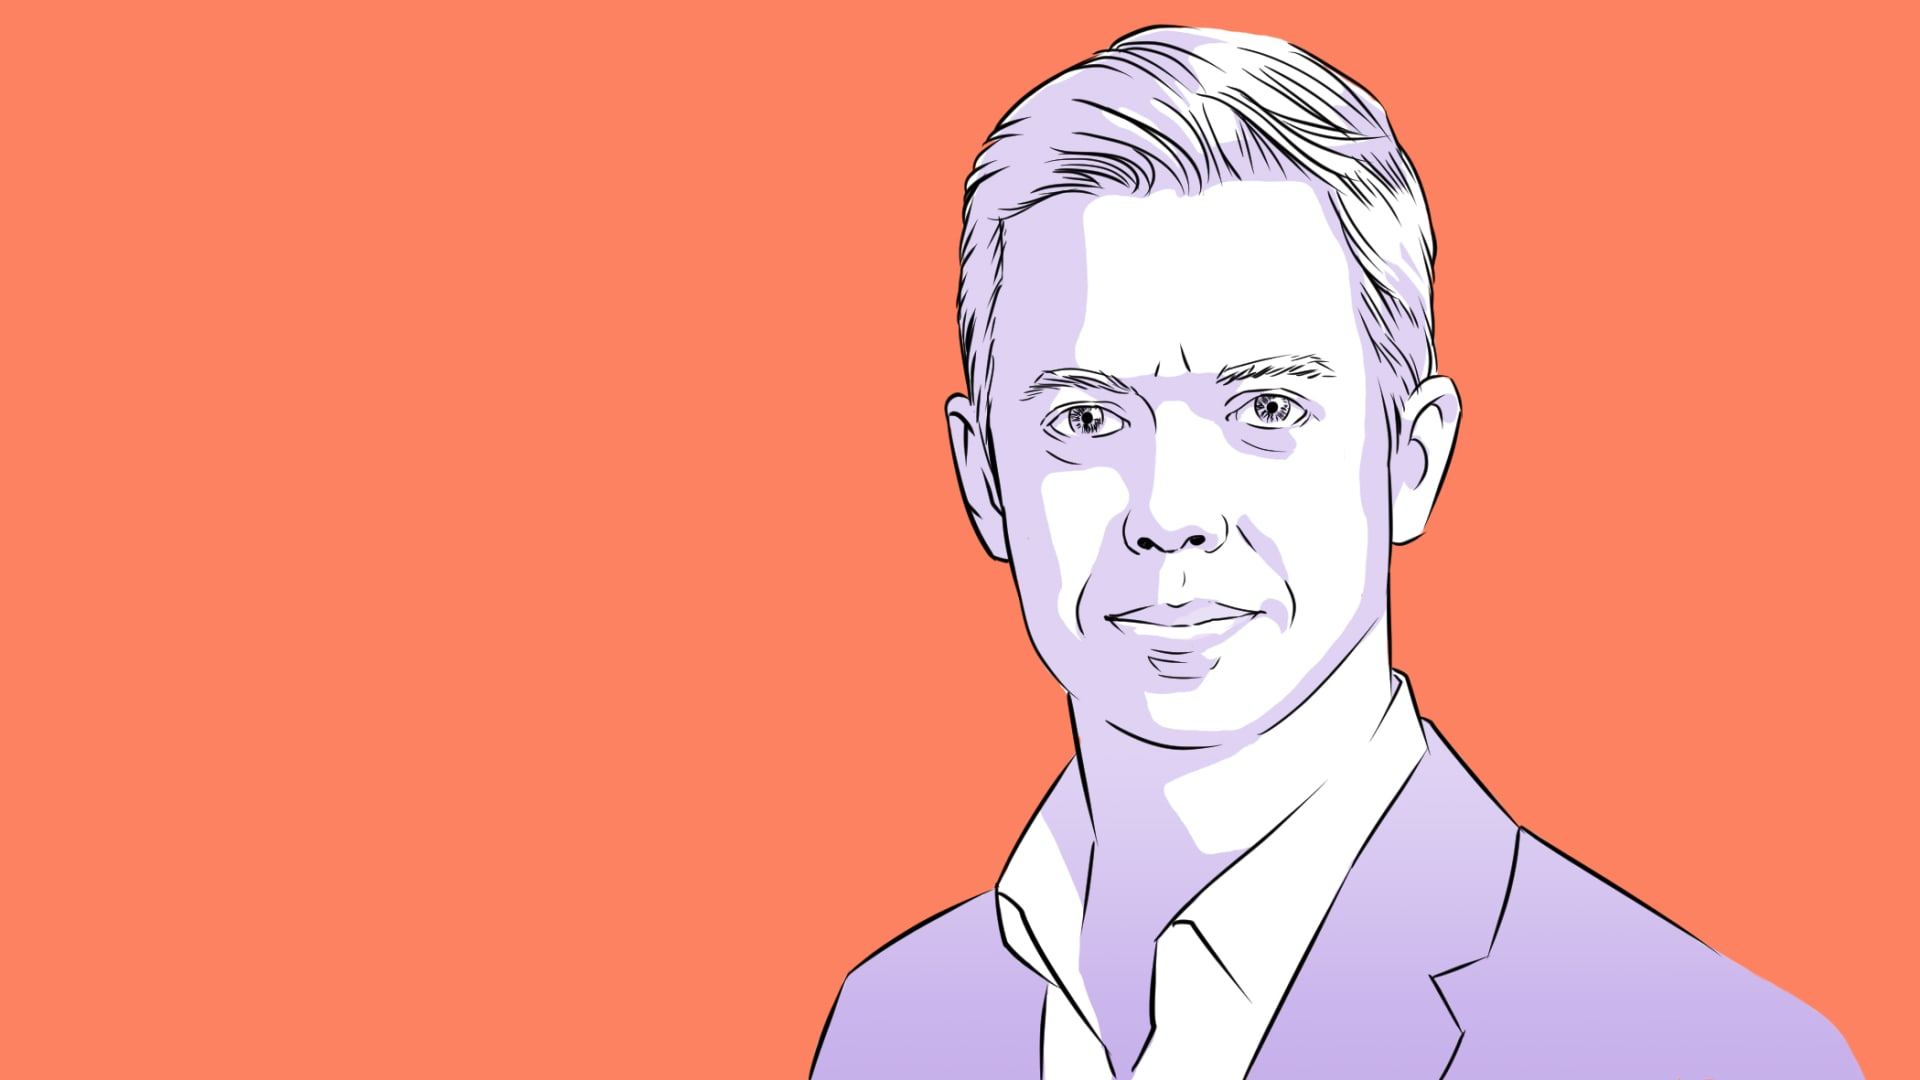 Reddit Co-Founder Steve Huffman: Find Your Company's North Star